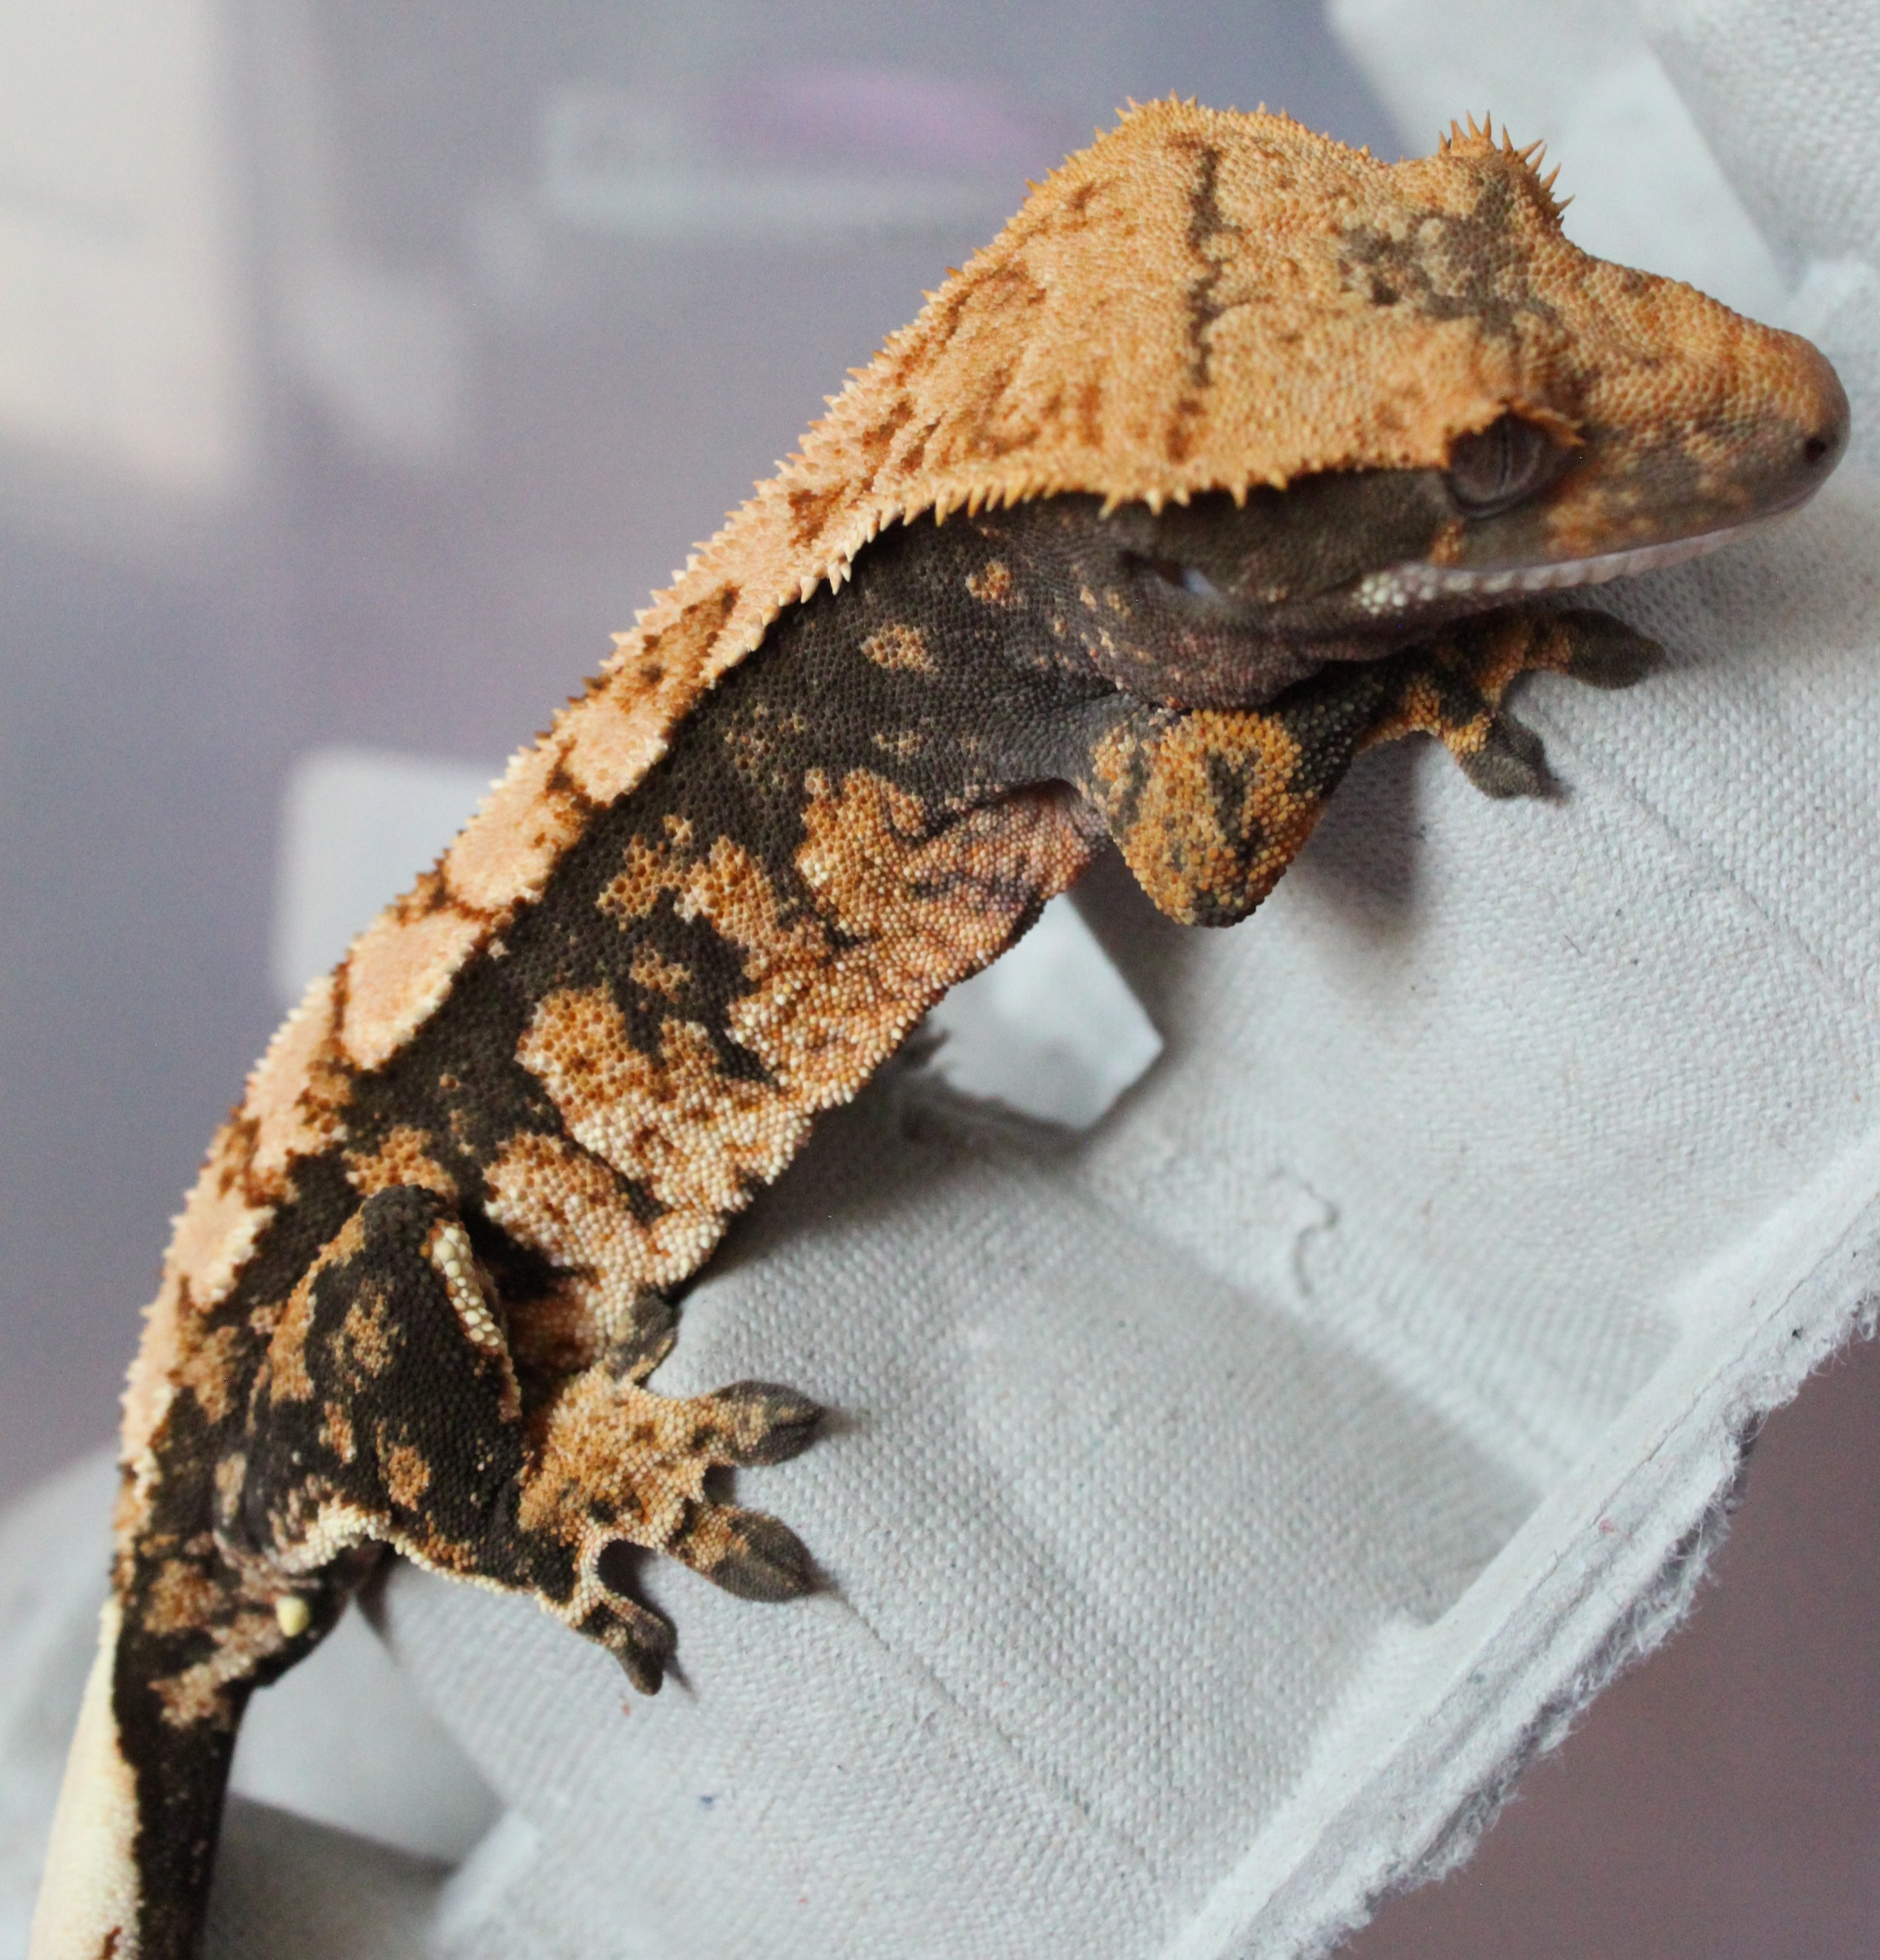 Indigo - Extreme Tri-color W/Pin Dashing: One of the daughters of Ember & Magma, Indigo is a beautiful crested gecko who I'm sure will be a stunner as she gets bigger! This lil one's patterns are so beautiful, I can not wait to see what babies she will produce in a couple years!